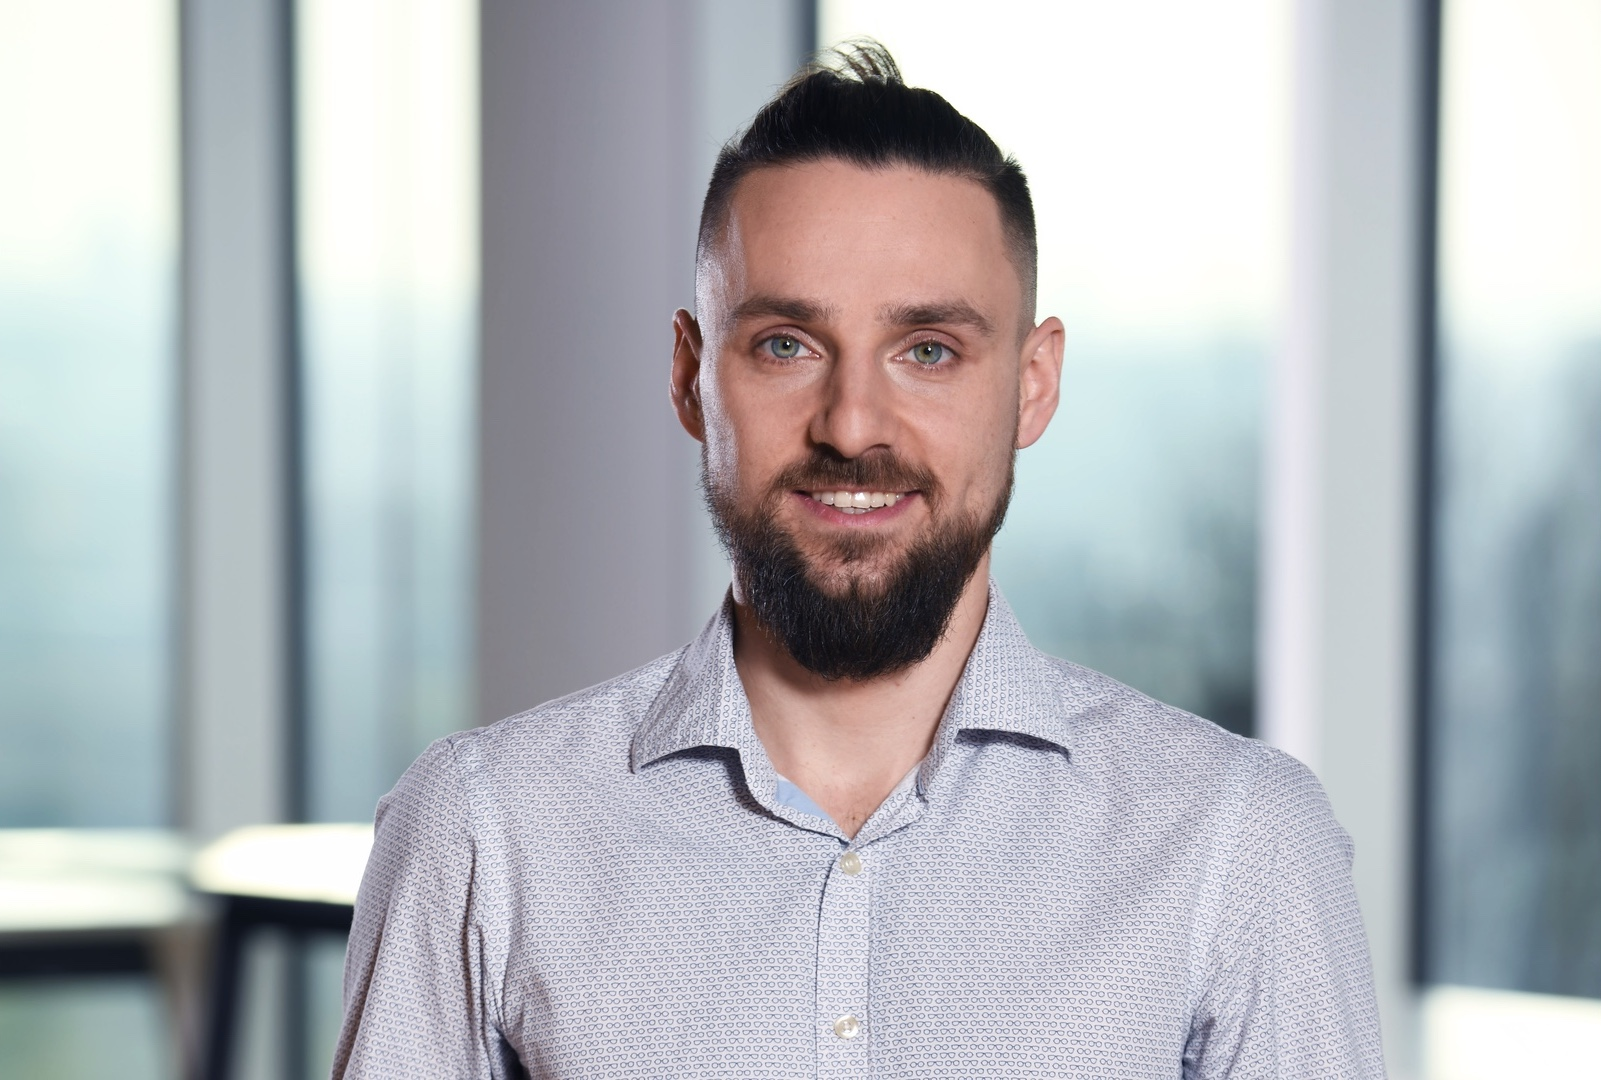 Pavel Šíma, CEO Roivenue